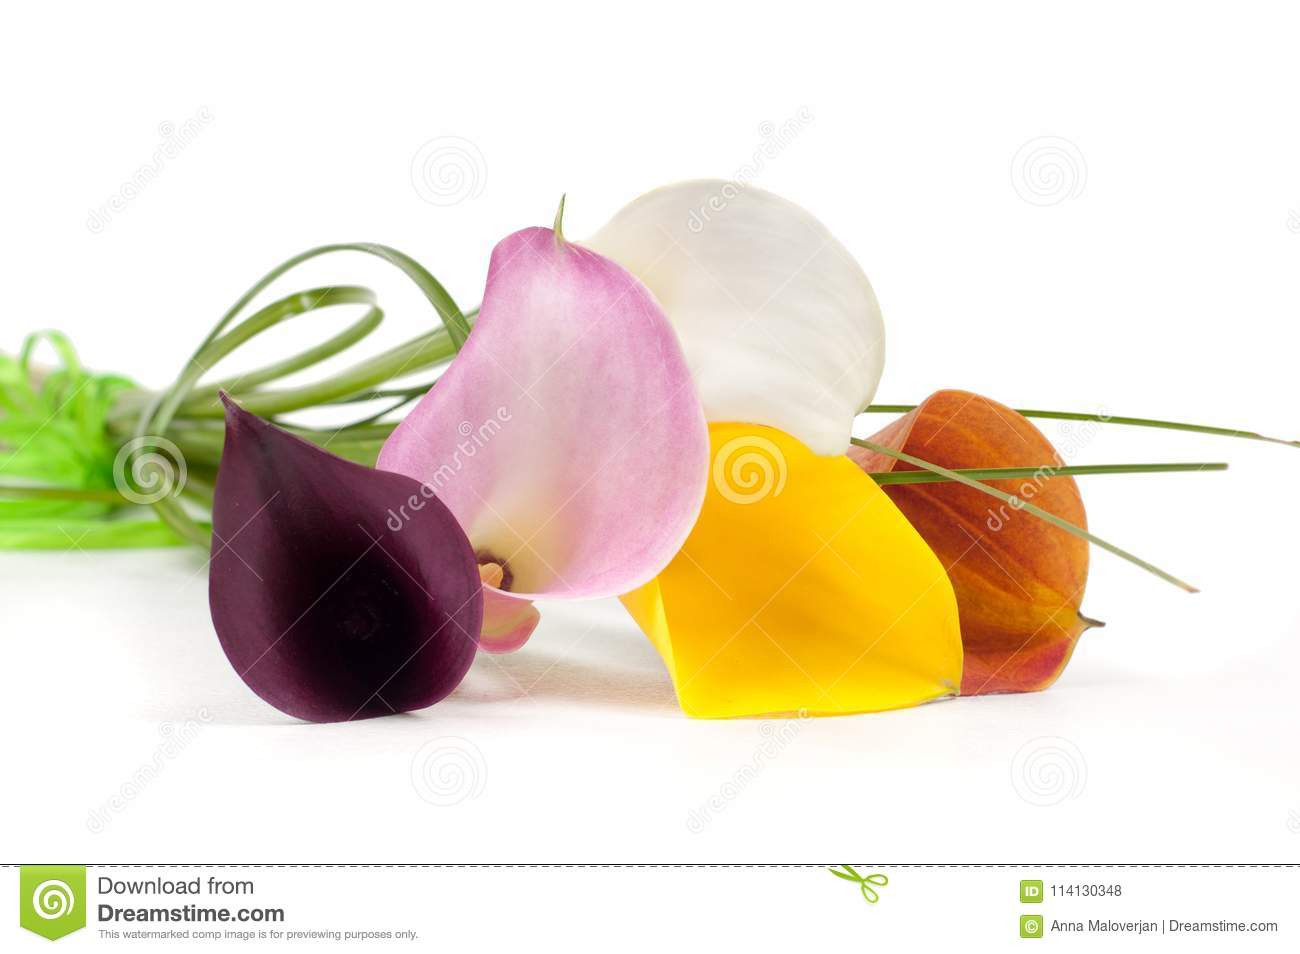 calla lily in vase photo of calla lilies flowers stock photo image of closeup delicate 114130348 with calla lilies flowers